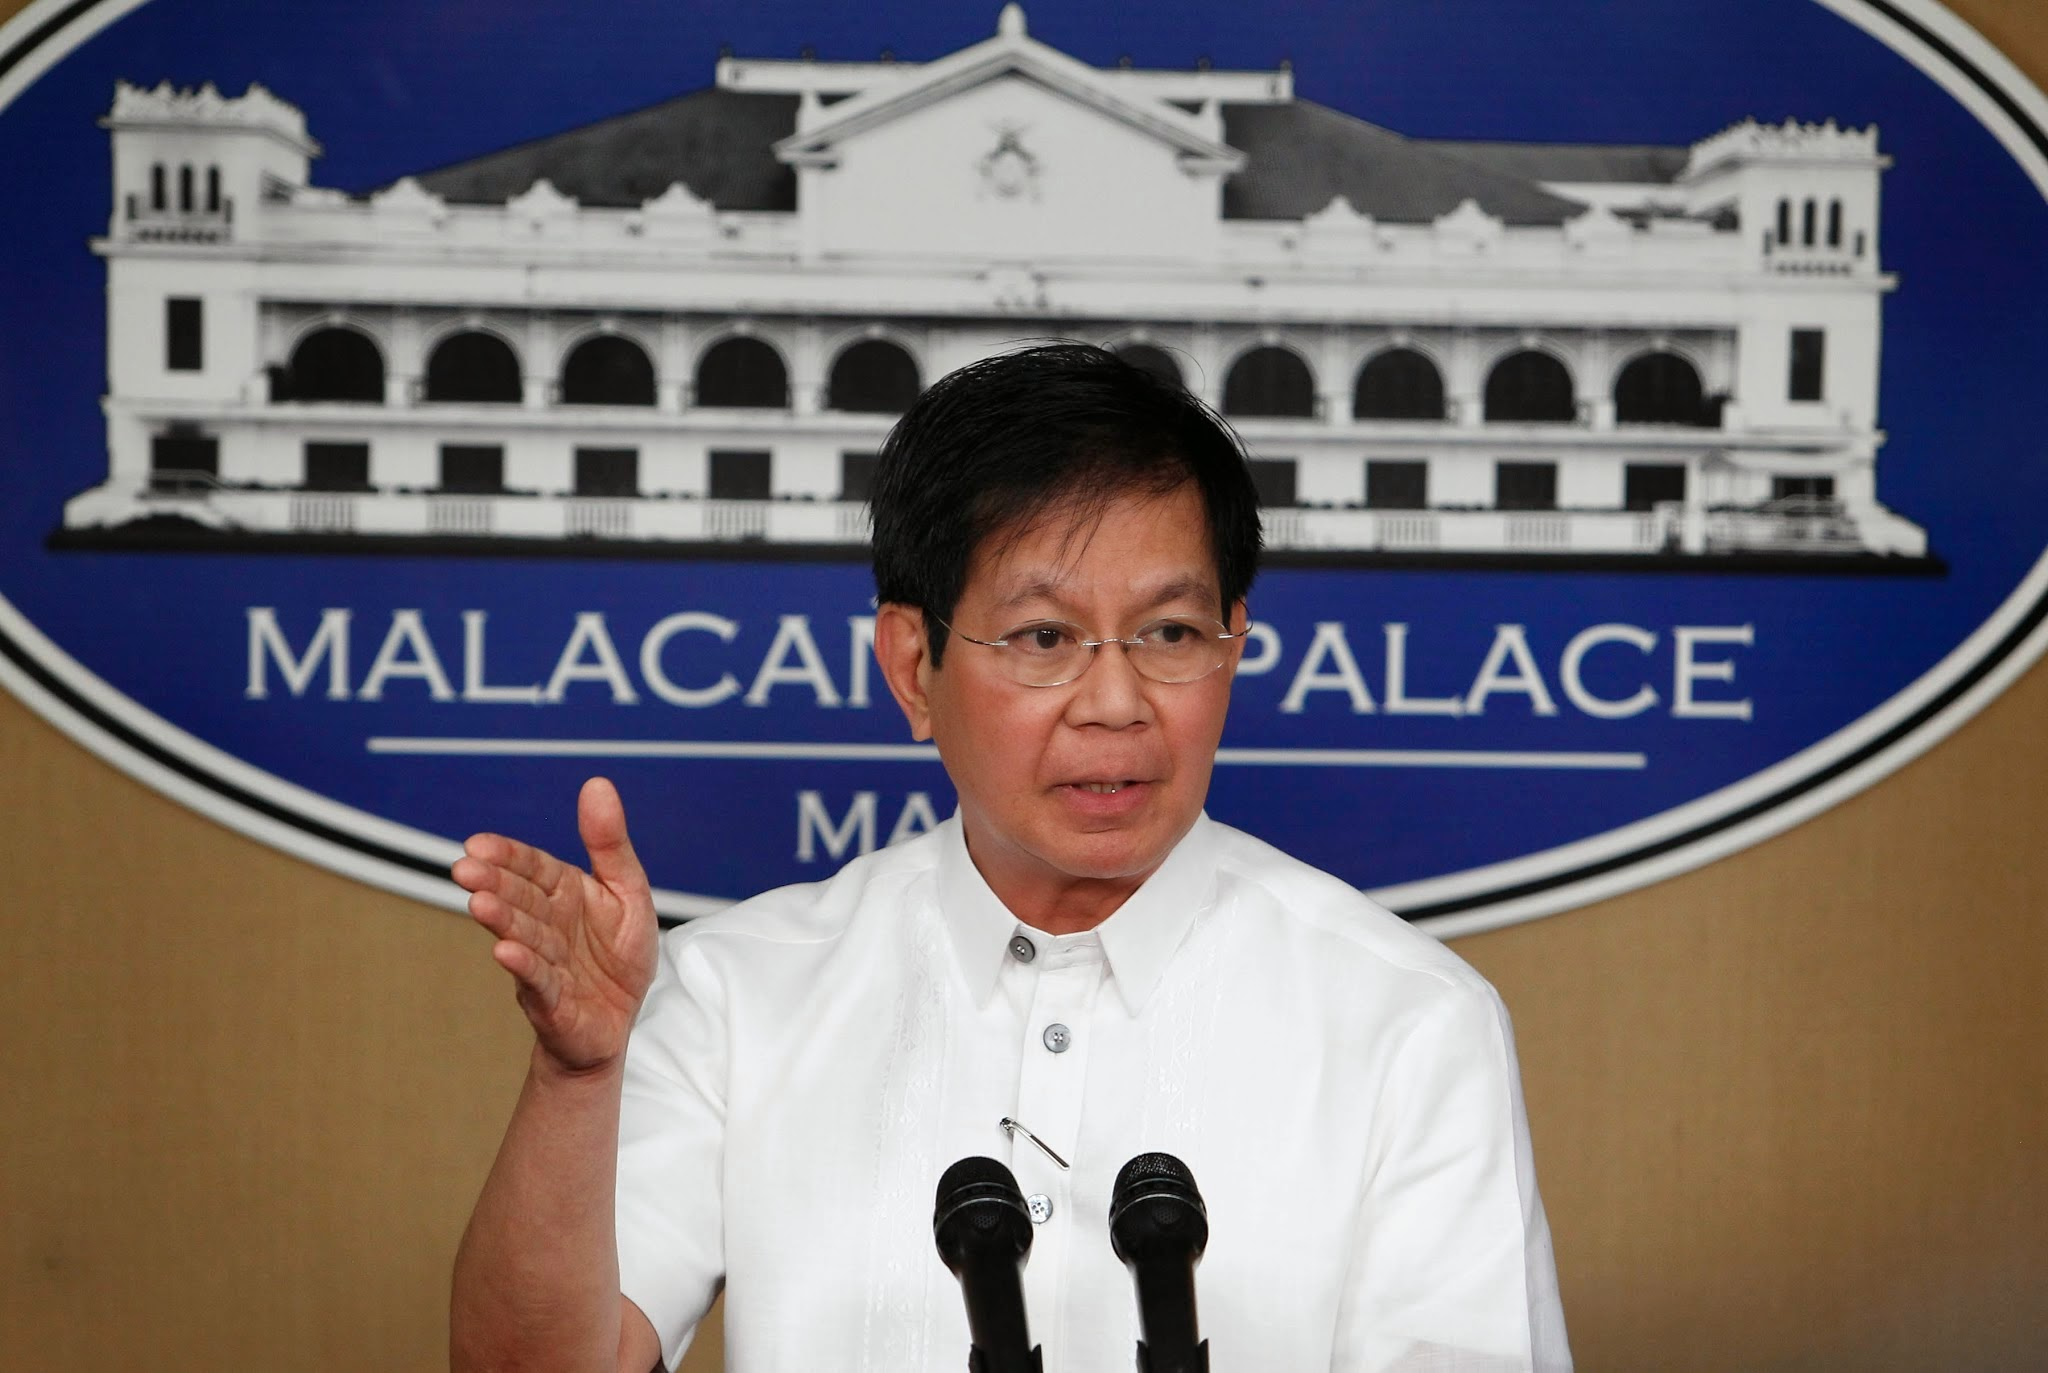 """Count me out. I'm not interested,"" Lacson said. (Photo by Benhur Arcayan/Malacañang Photo Bureau)"